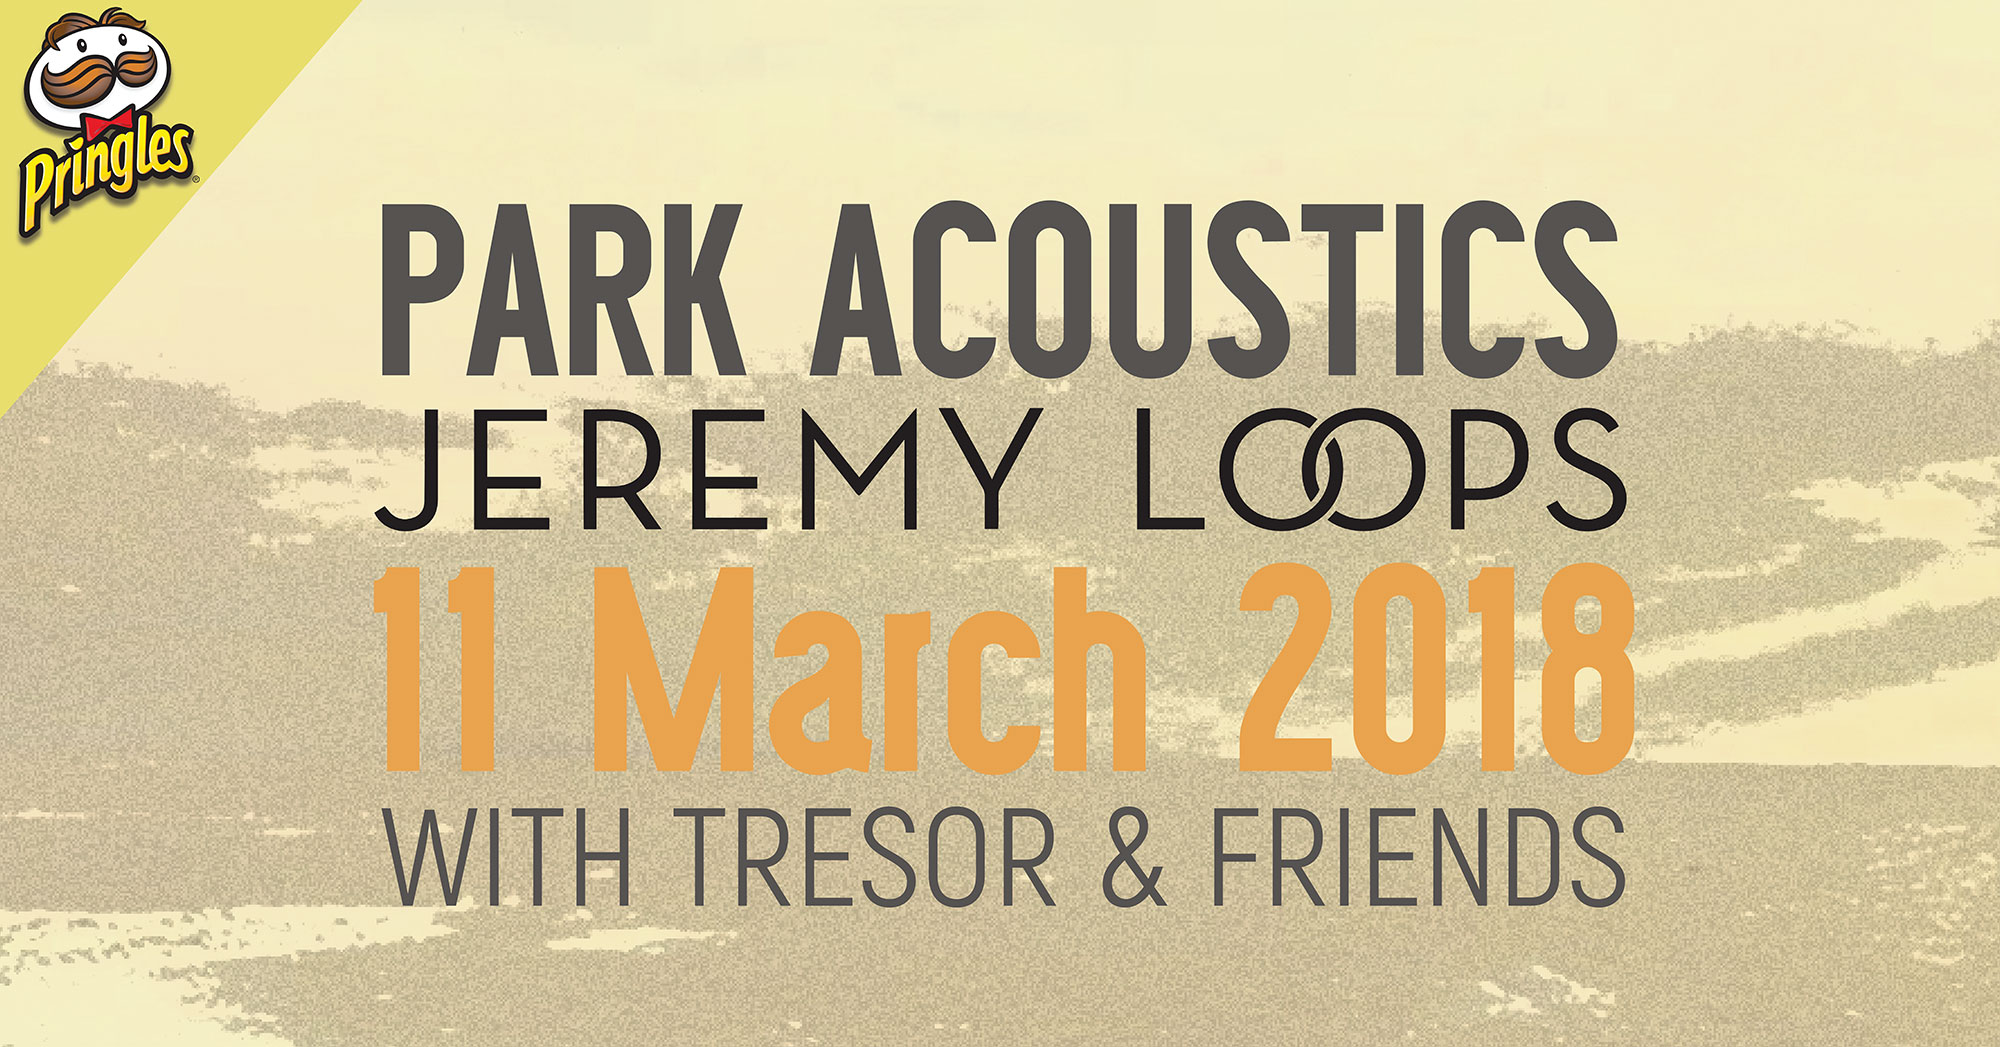 GIVEAWAY: Park Acoustics March Tickets